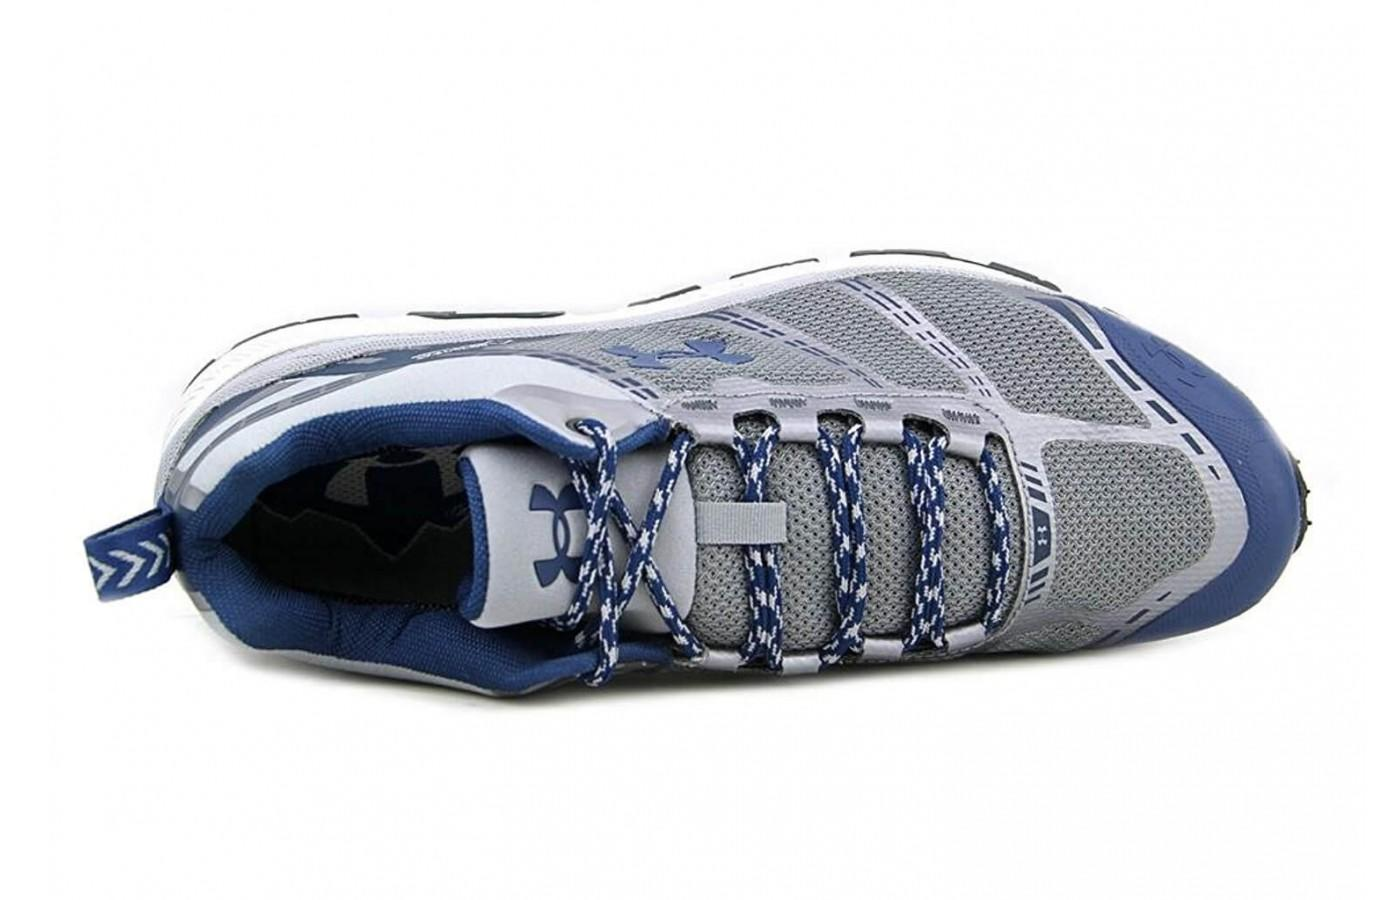 Under Armour Verge Low GTX top view